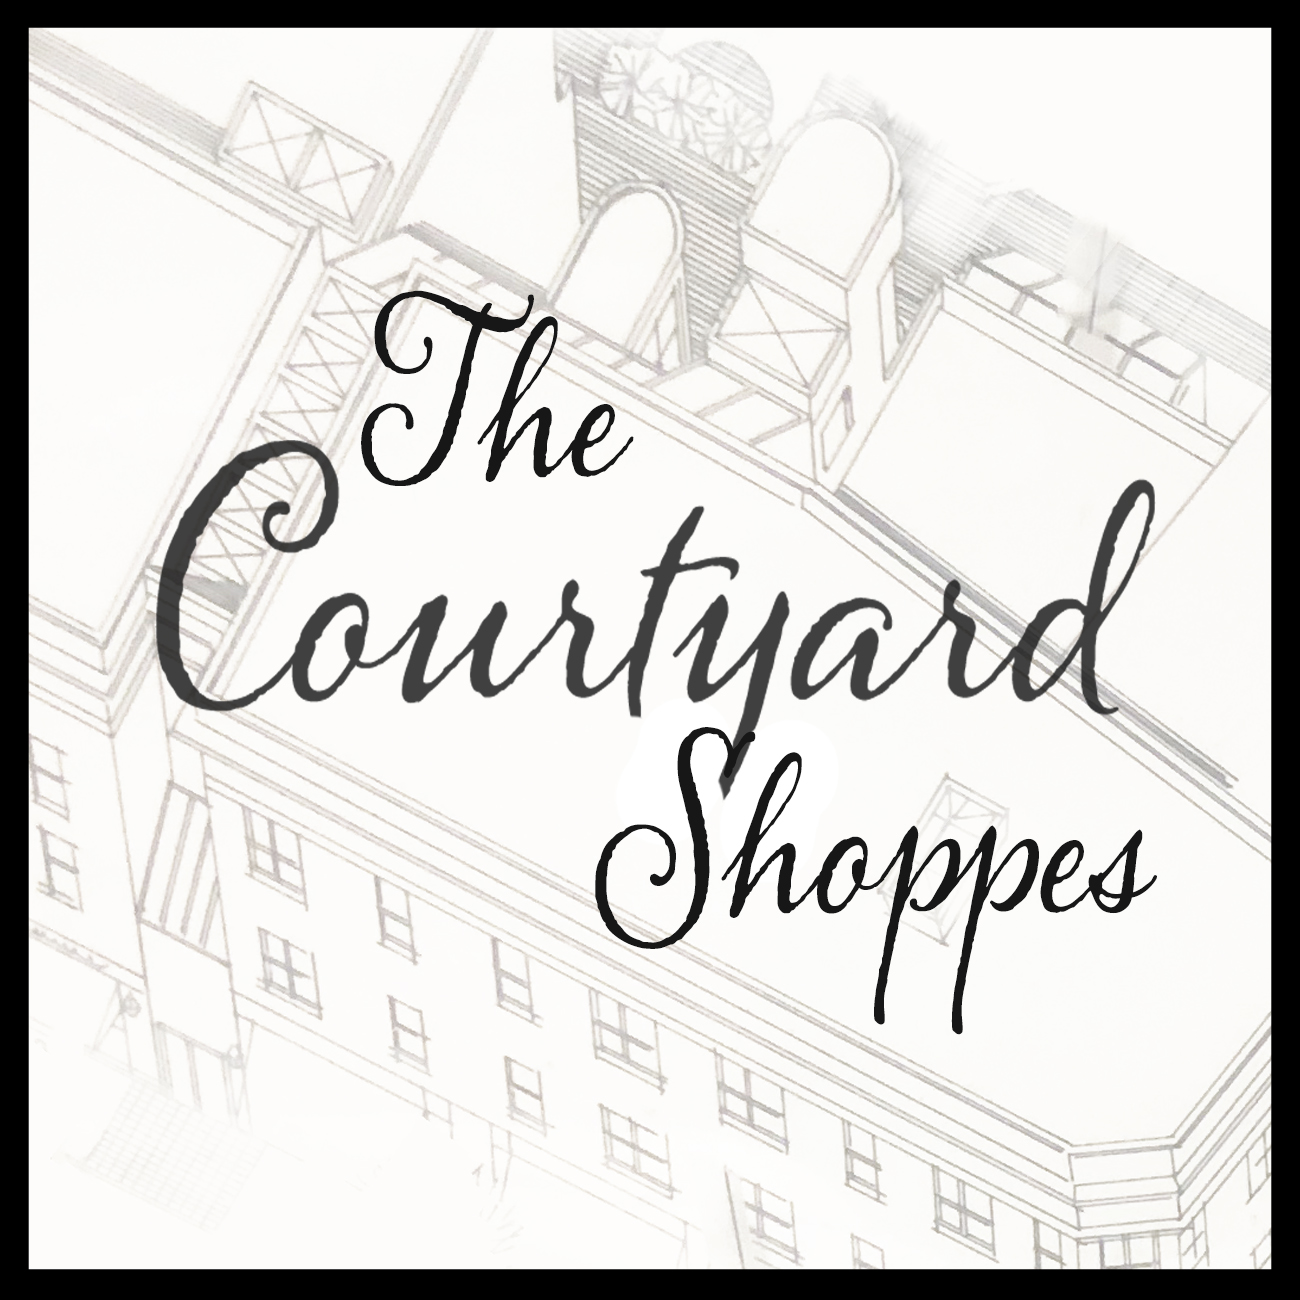 The Courtyard Shoppes